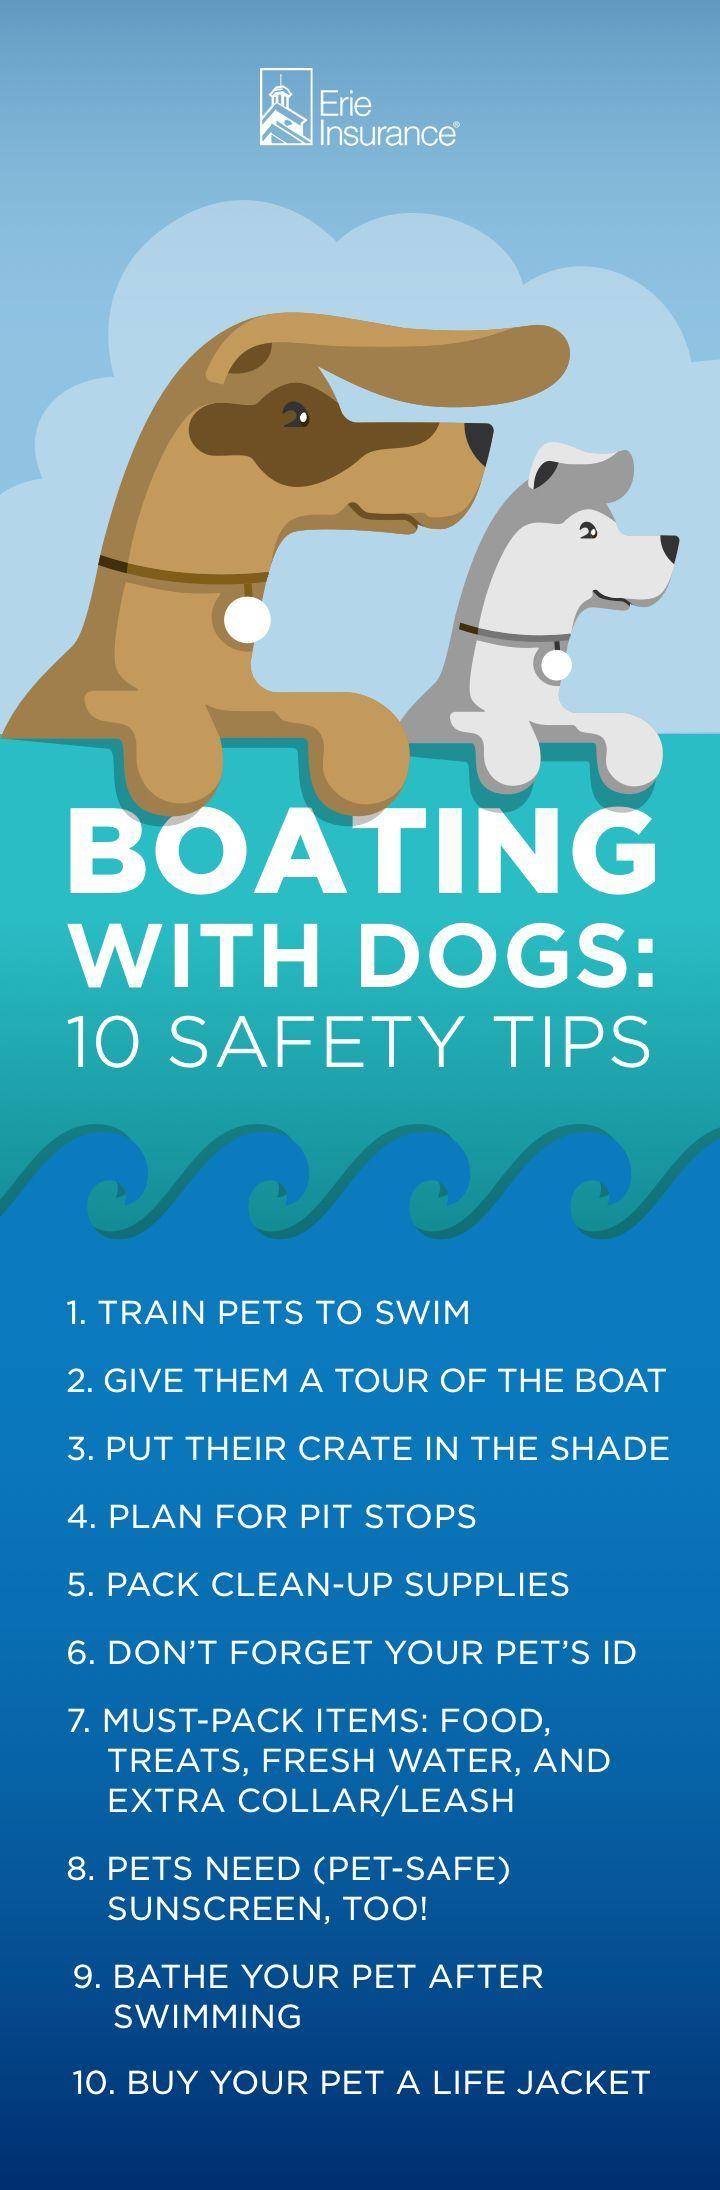 Boating with Dogs Expert Shares Top 10 Water Safety Tips